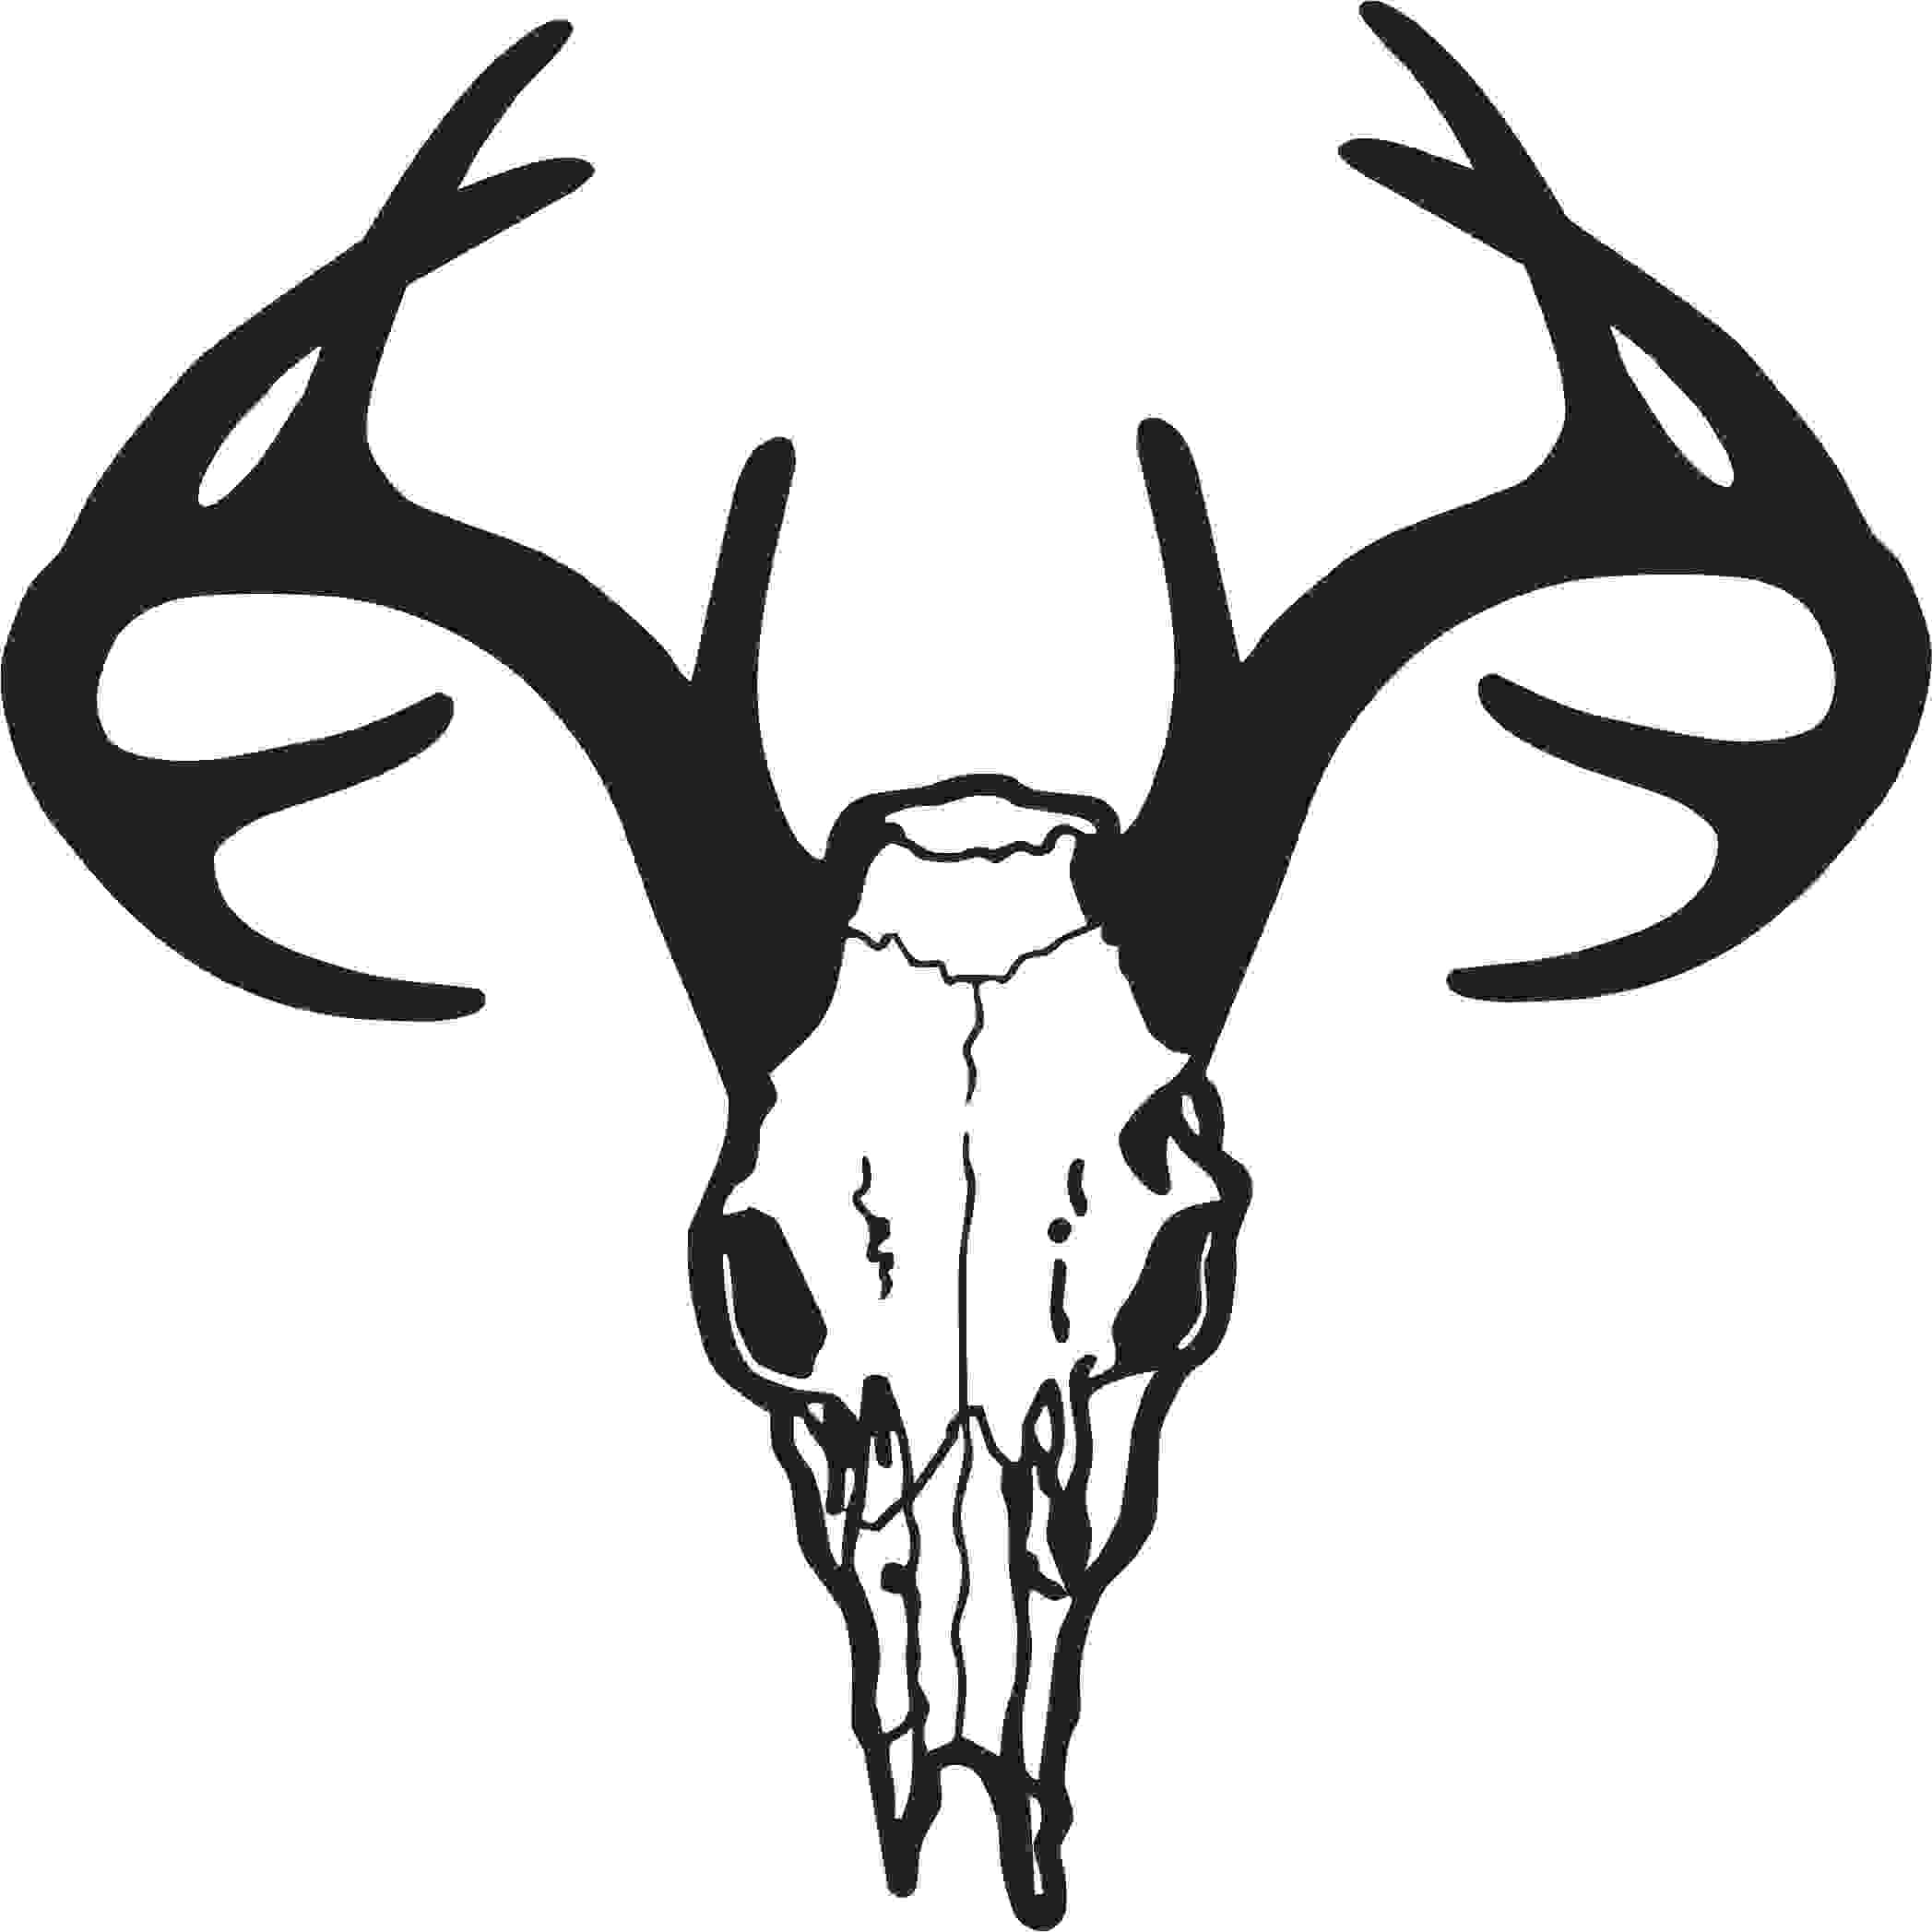 Whitetail Deer Clip Art Black And White on feet on high wire